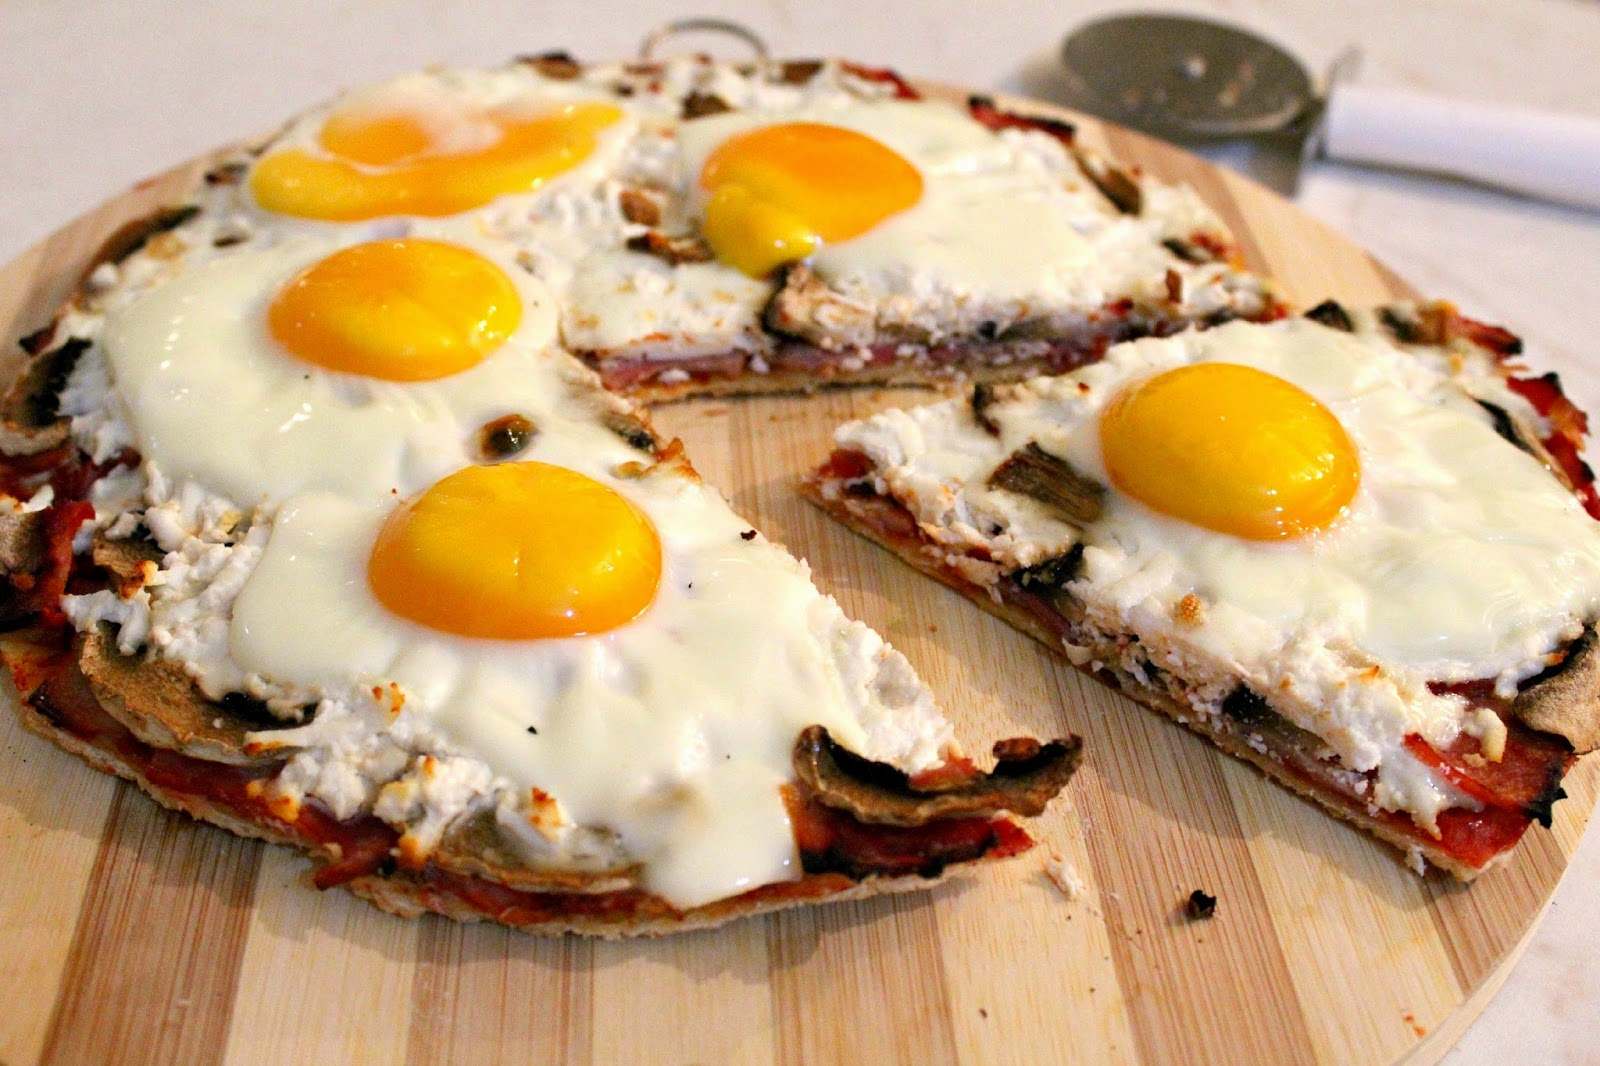 http://theseamanmom.com/breakfast-pizza-recipe-with-eggs-ham-and-cheese/